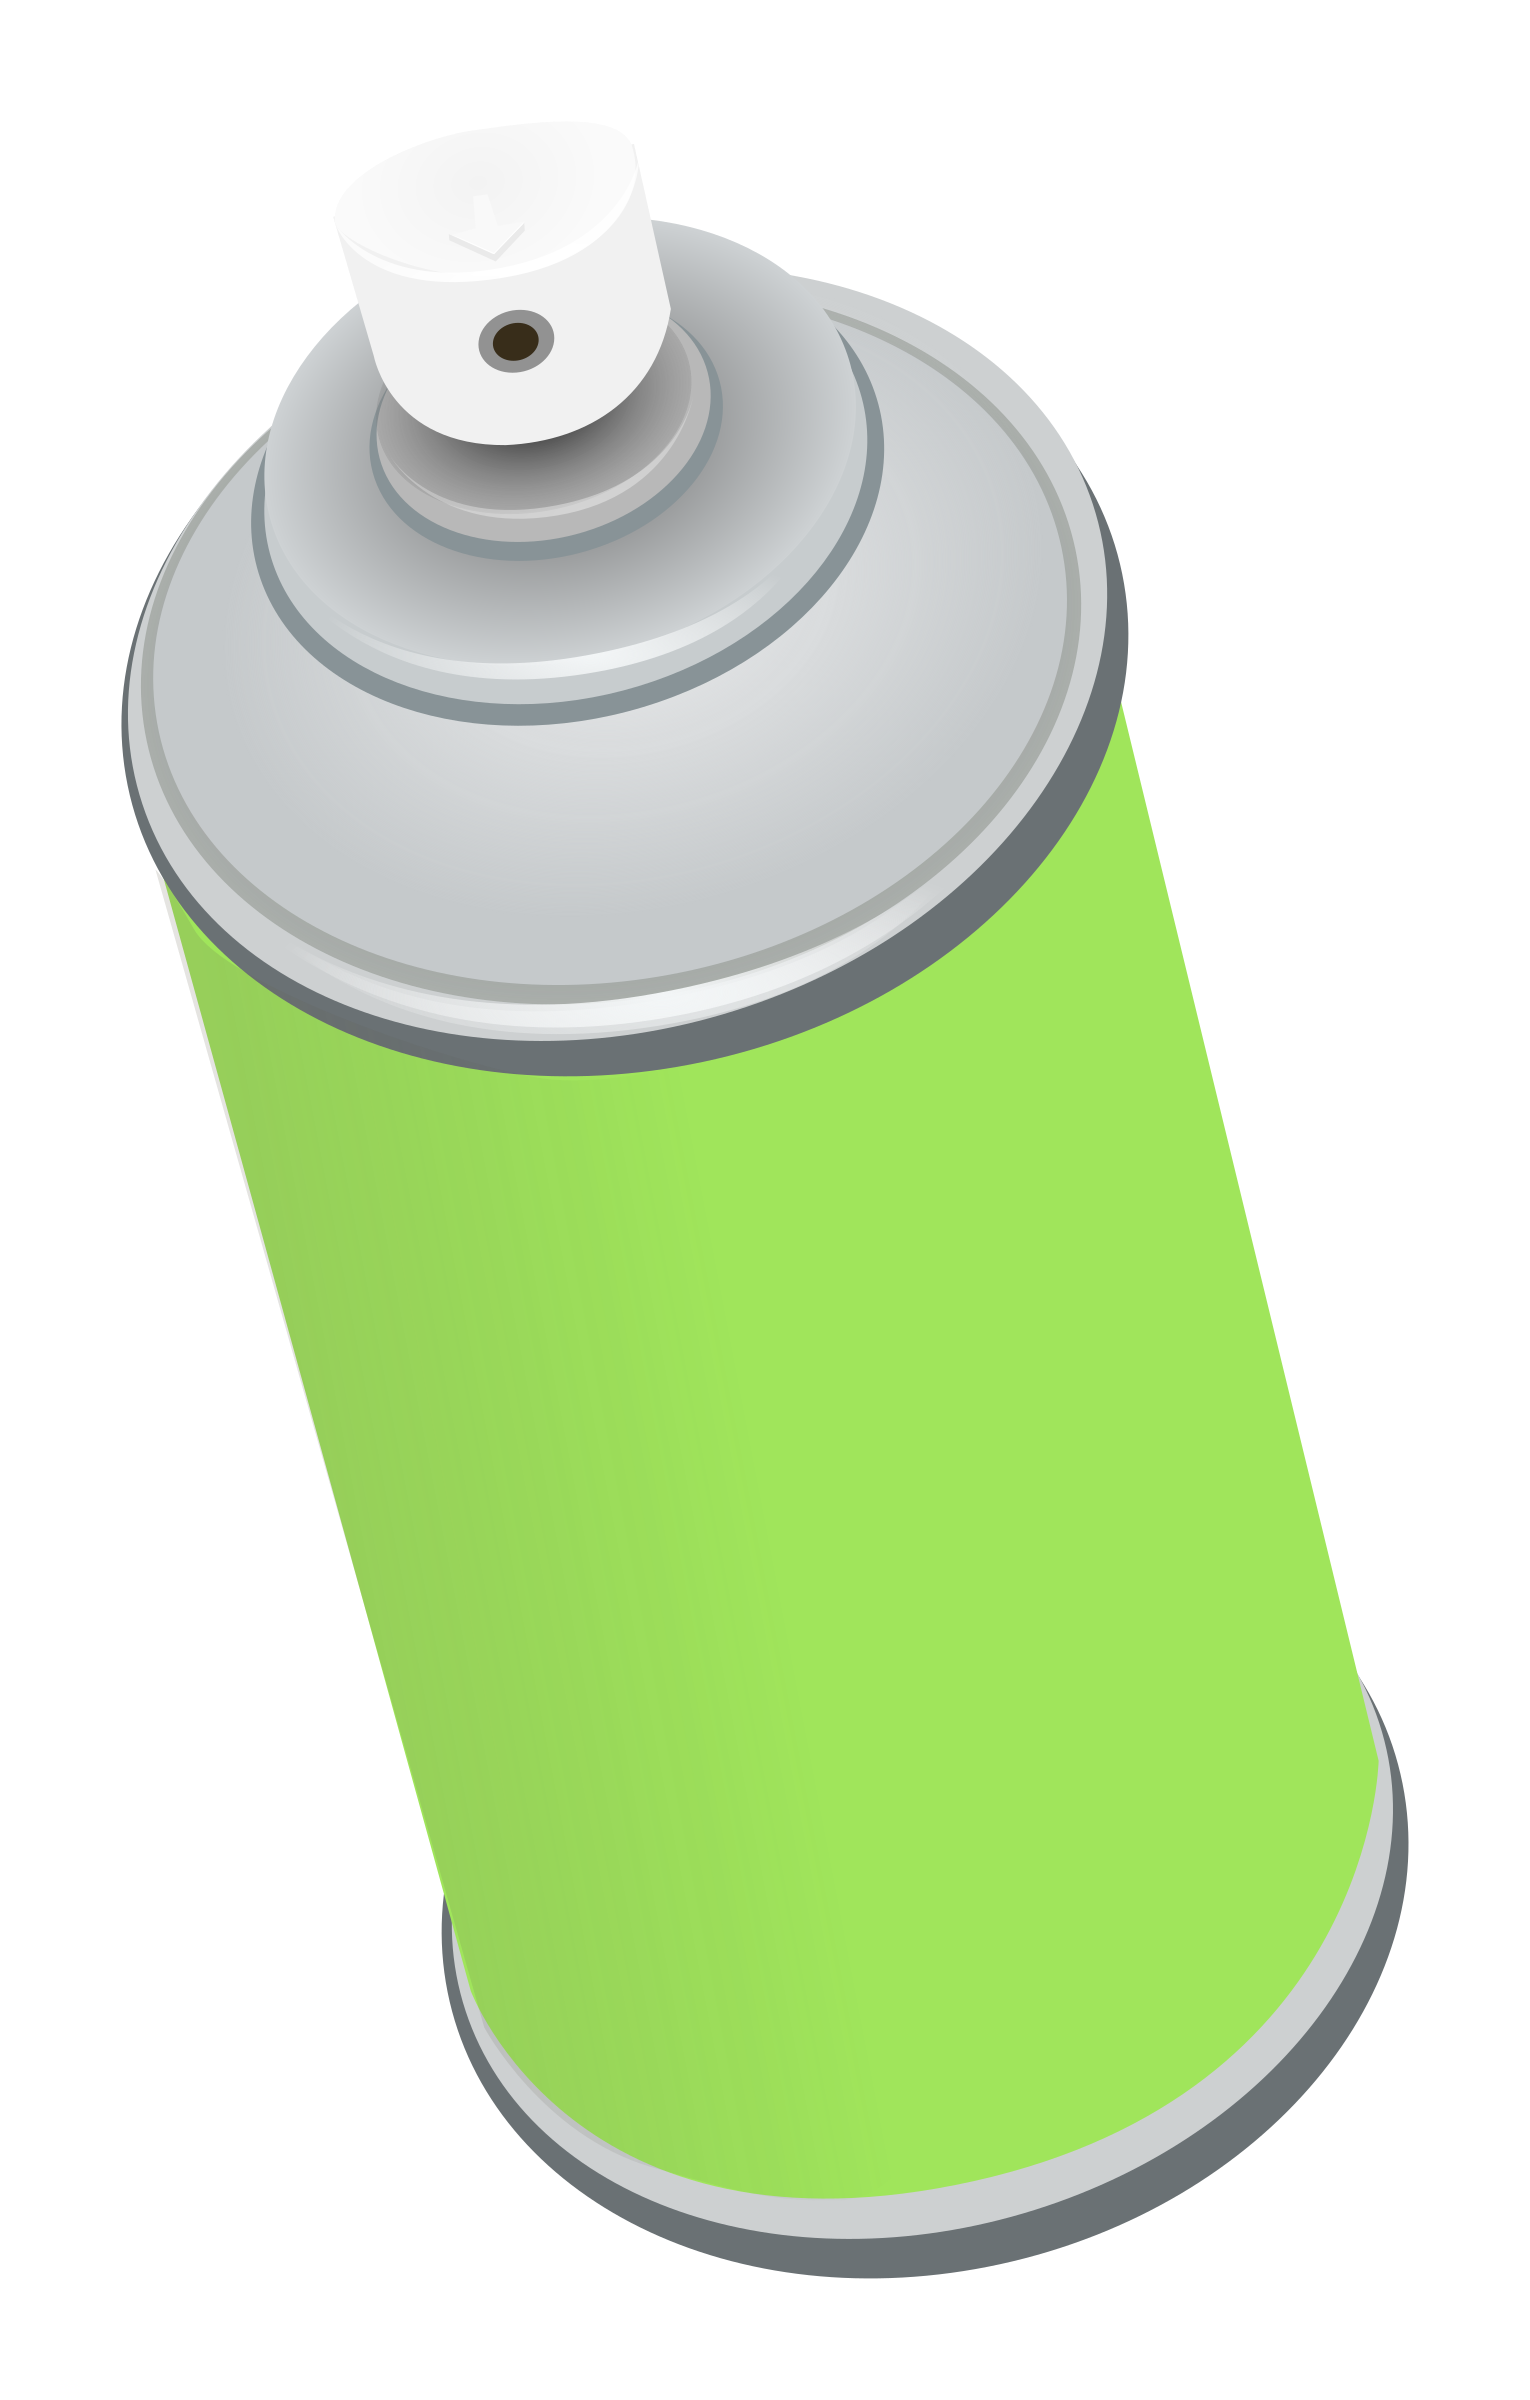 Spray Can Image Transparent PNG image #28846